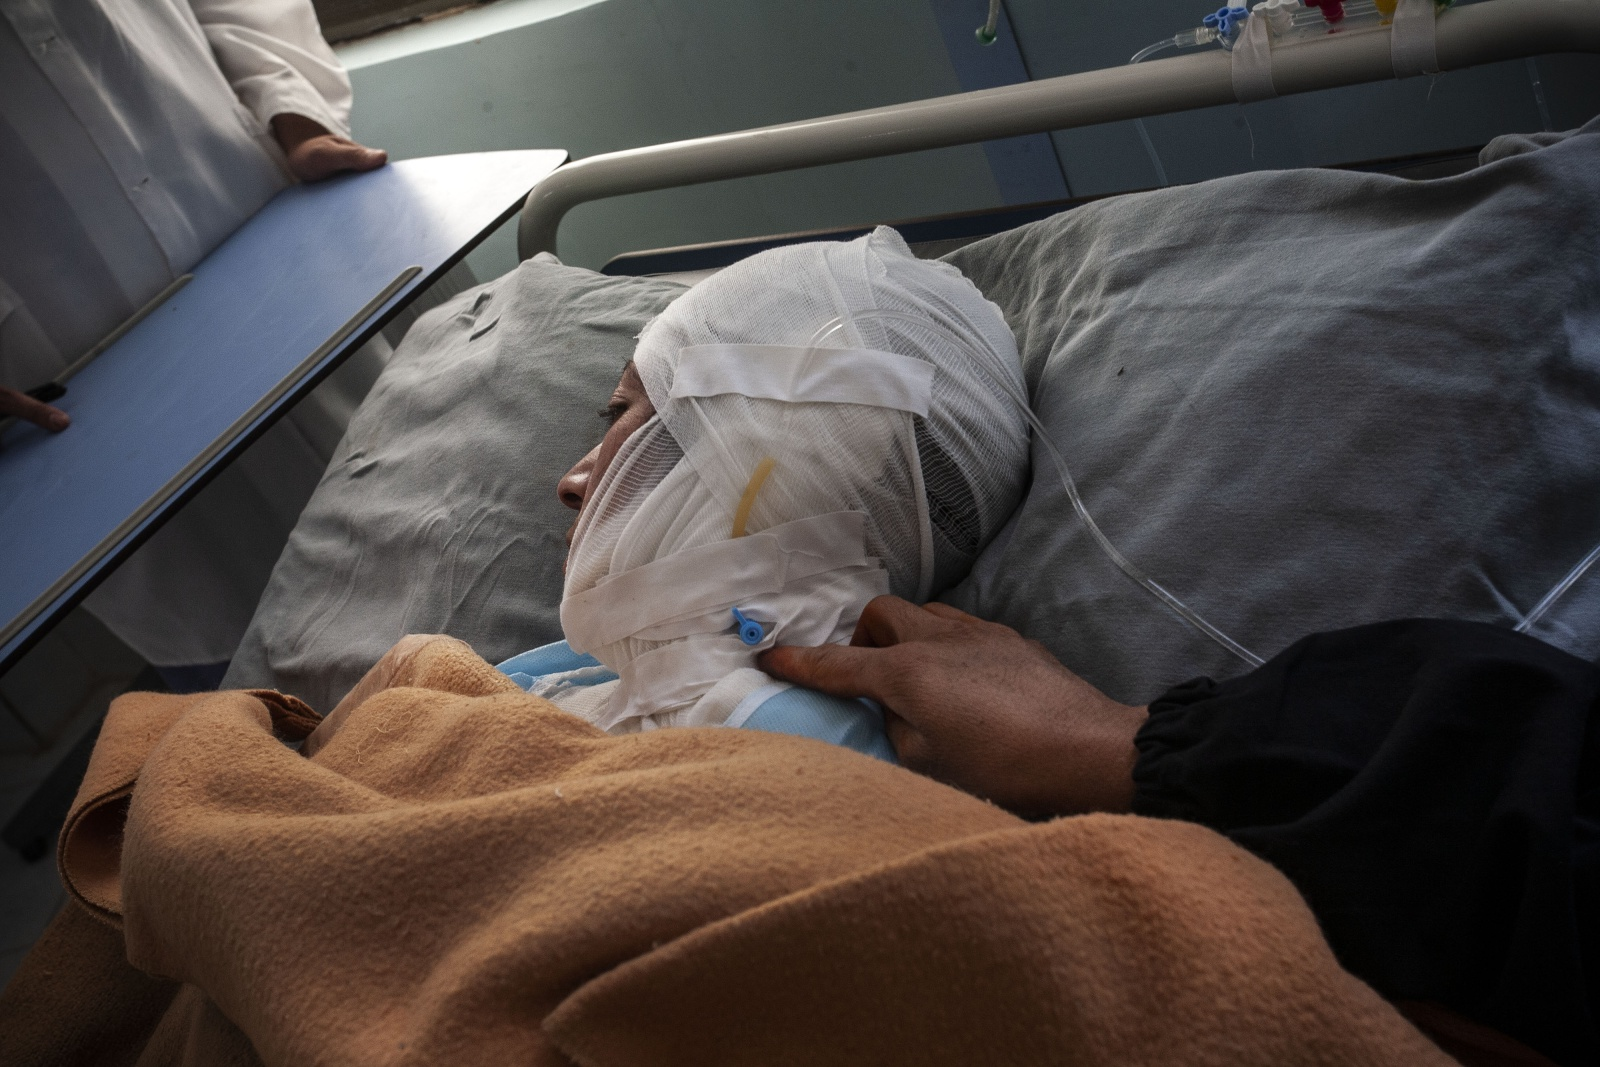 Afghanistan, ospedale Burning Centre di Herat dove vengono accolte le donne e i bambini ustionati.  The woman tragedy of self-immolation in Afghanistan